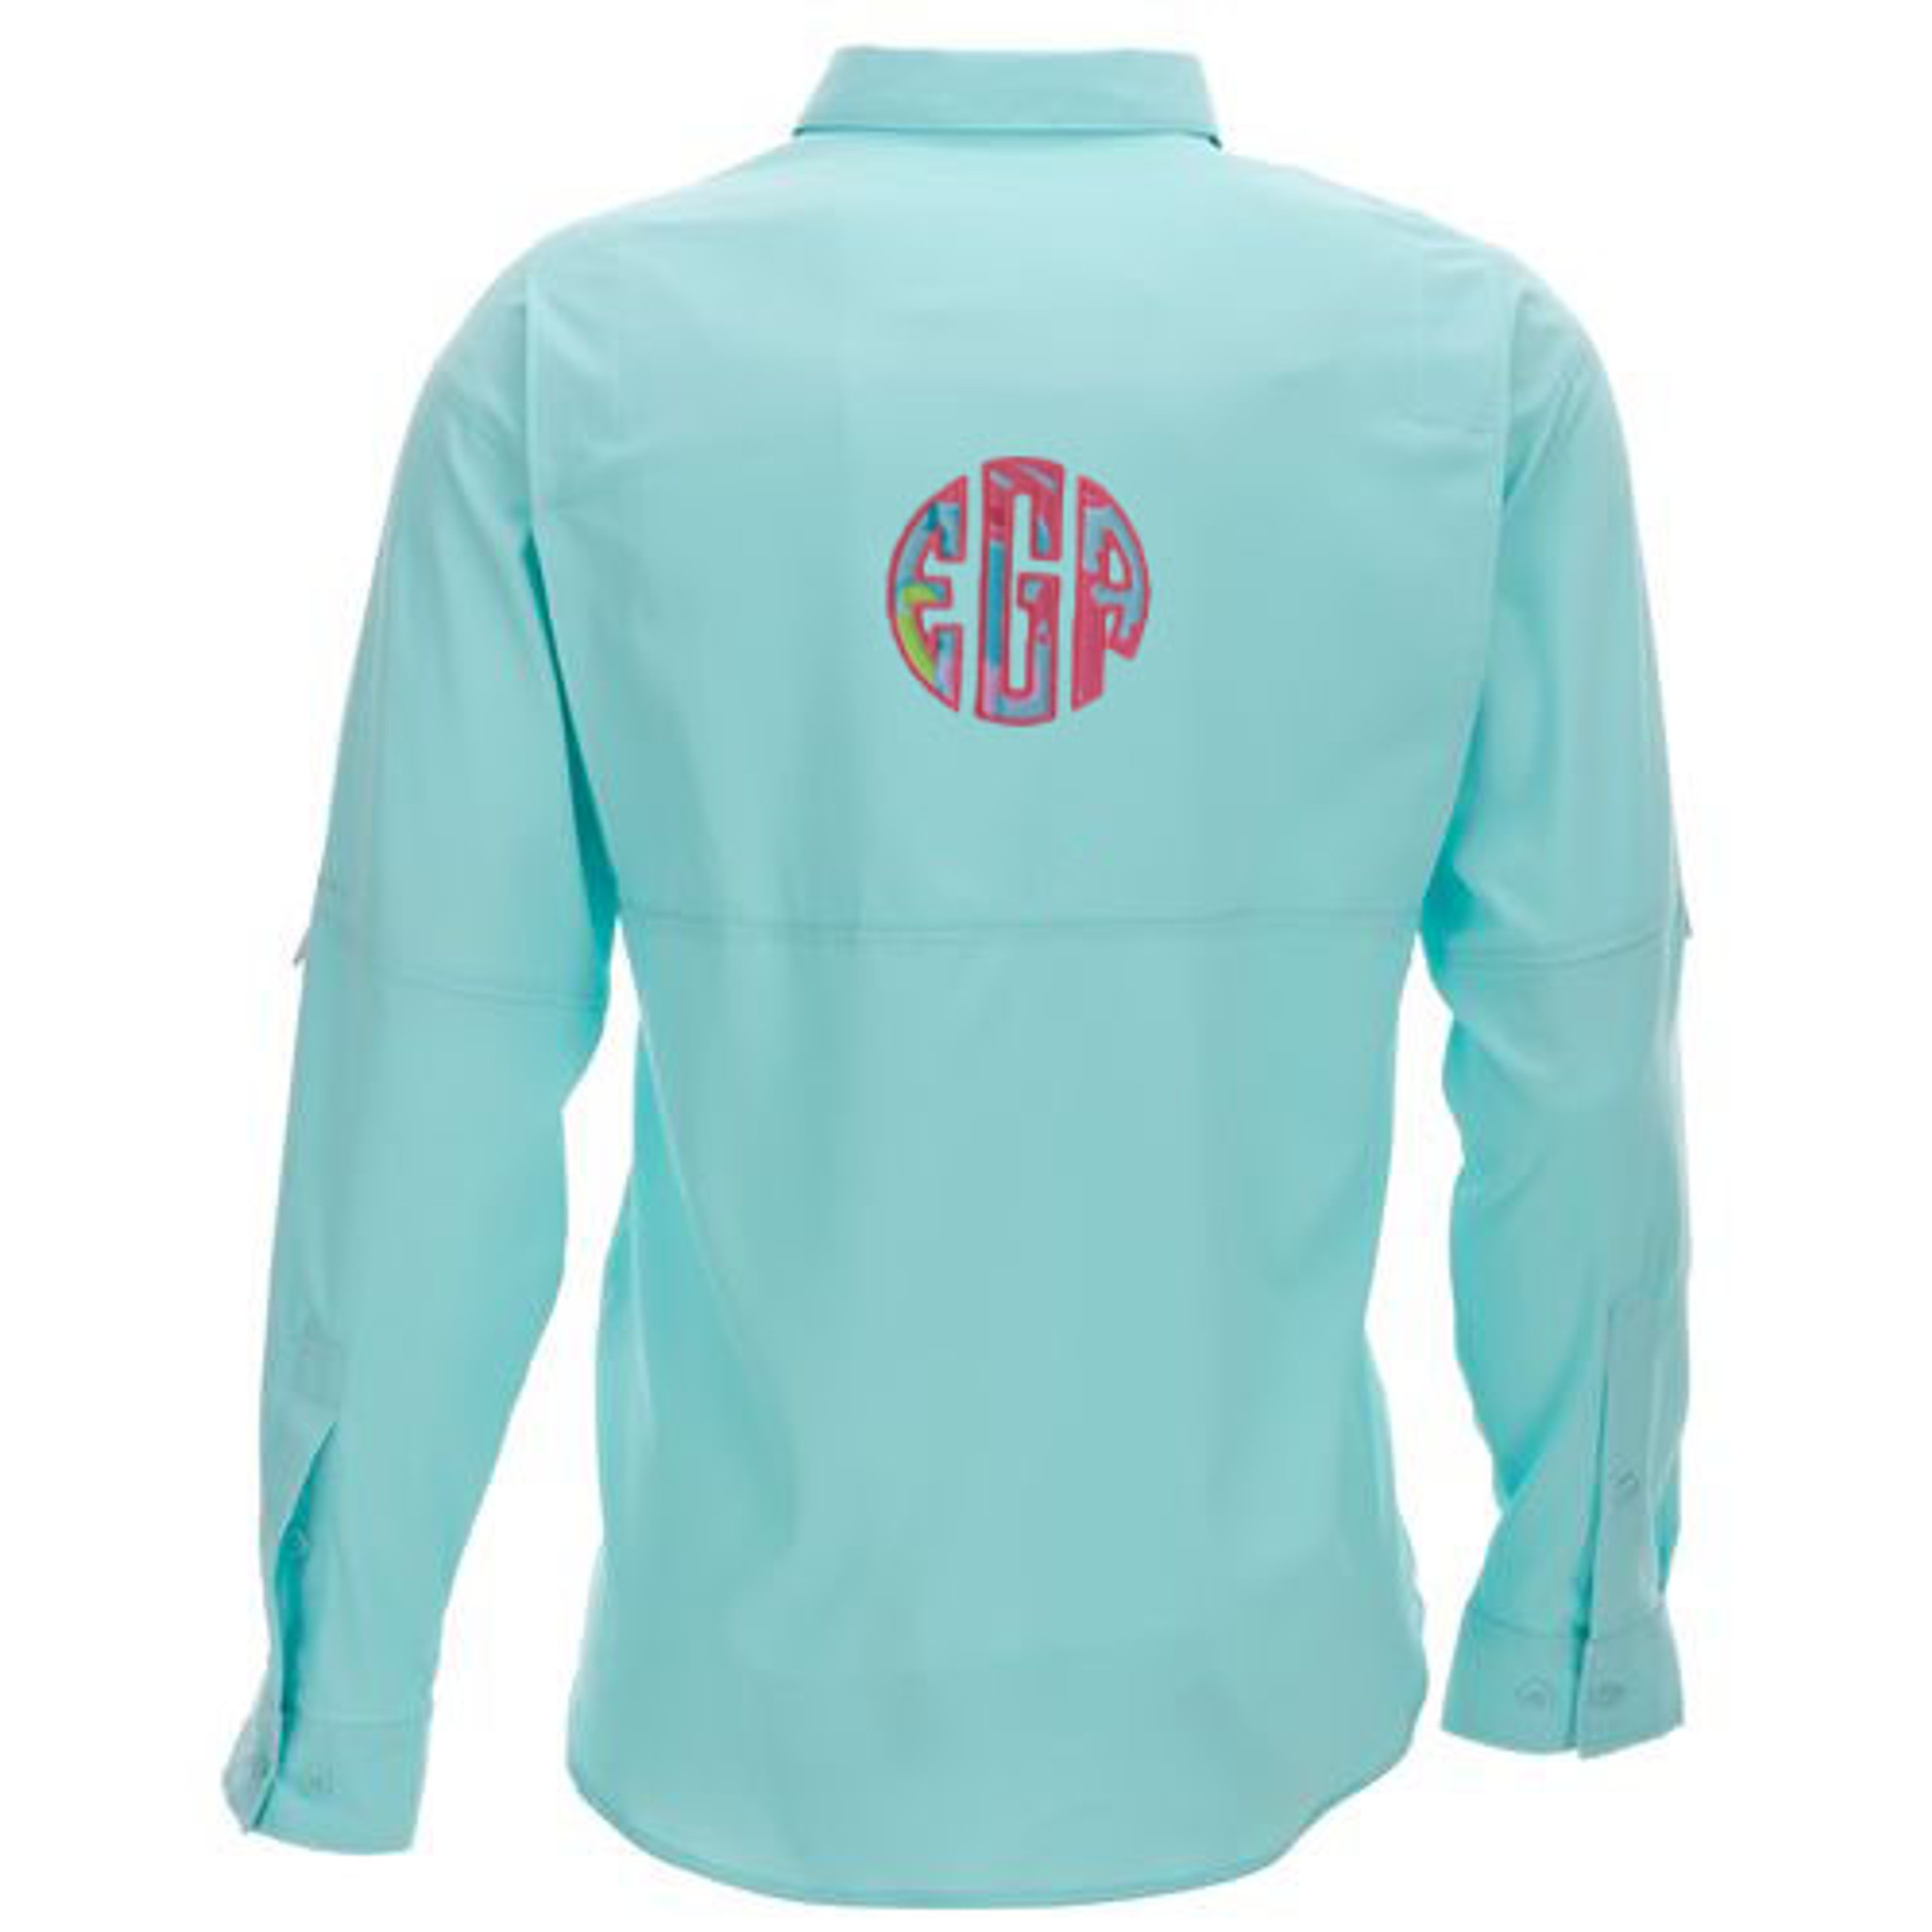 6b57631c83 Lilly Pulitzer Monogrammed PFG Fishing Shirt www.tinytulip.com Checking In  Blue with Coral